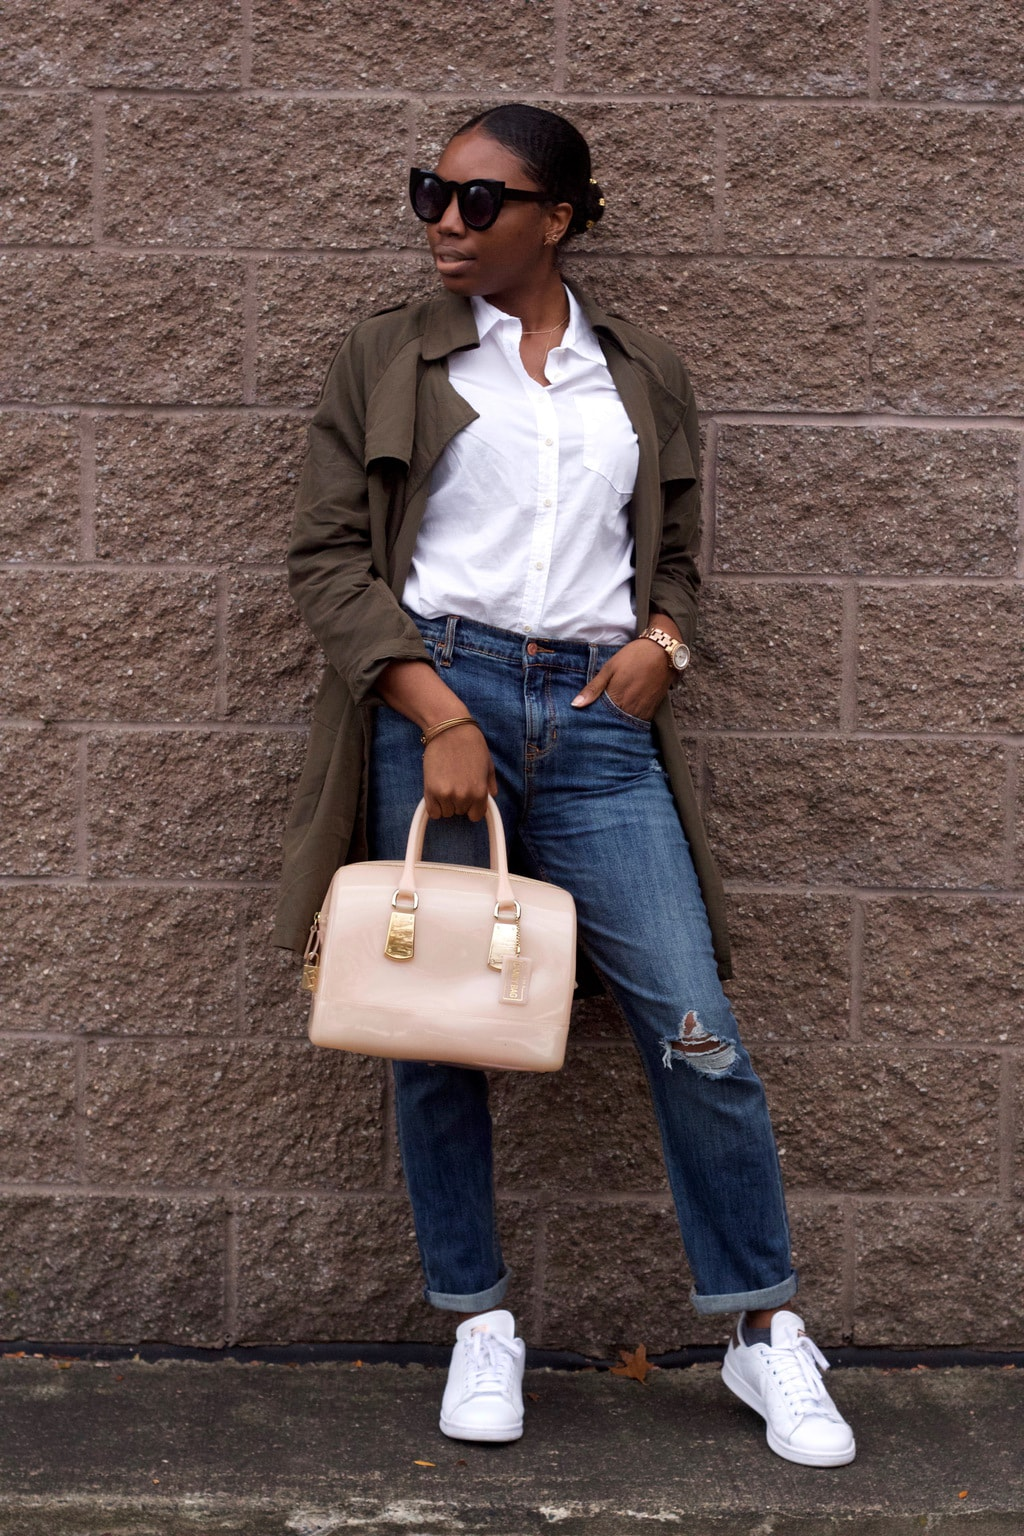 Amani wears a white button-up blouse tucked into loose-fit medium-wash distressed boyfriend jeans with an olive green duster rain jacket and white sneakers. She accessorizes with a blush pink rubberized tote bag and bold cat-eye sunglasses.